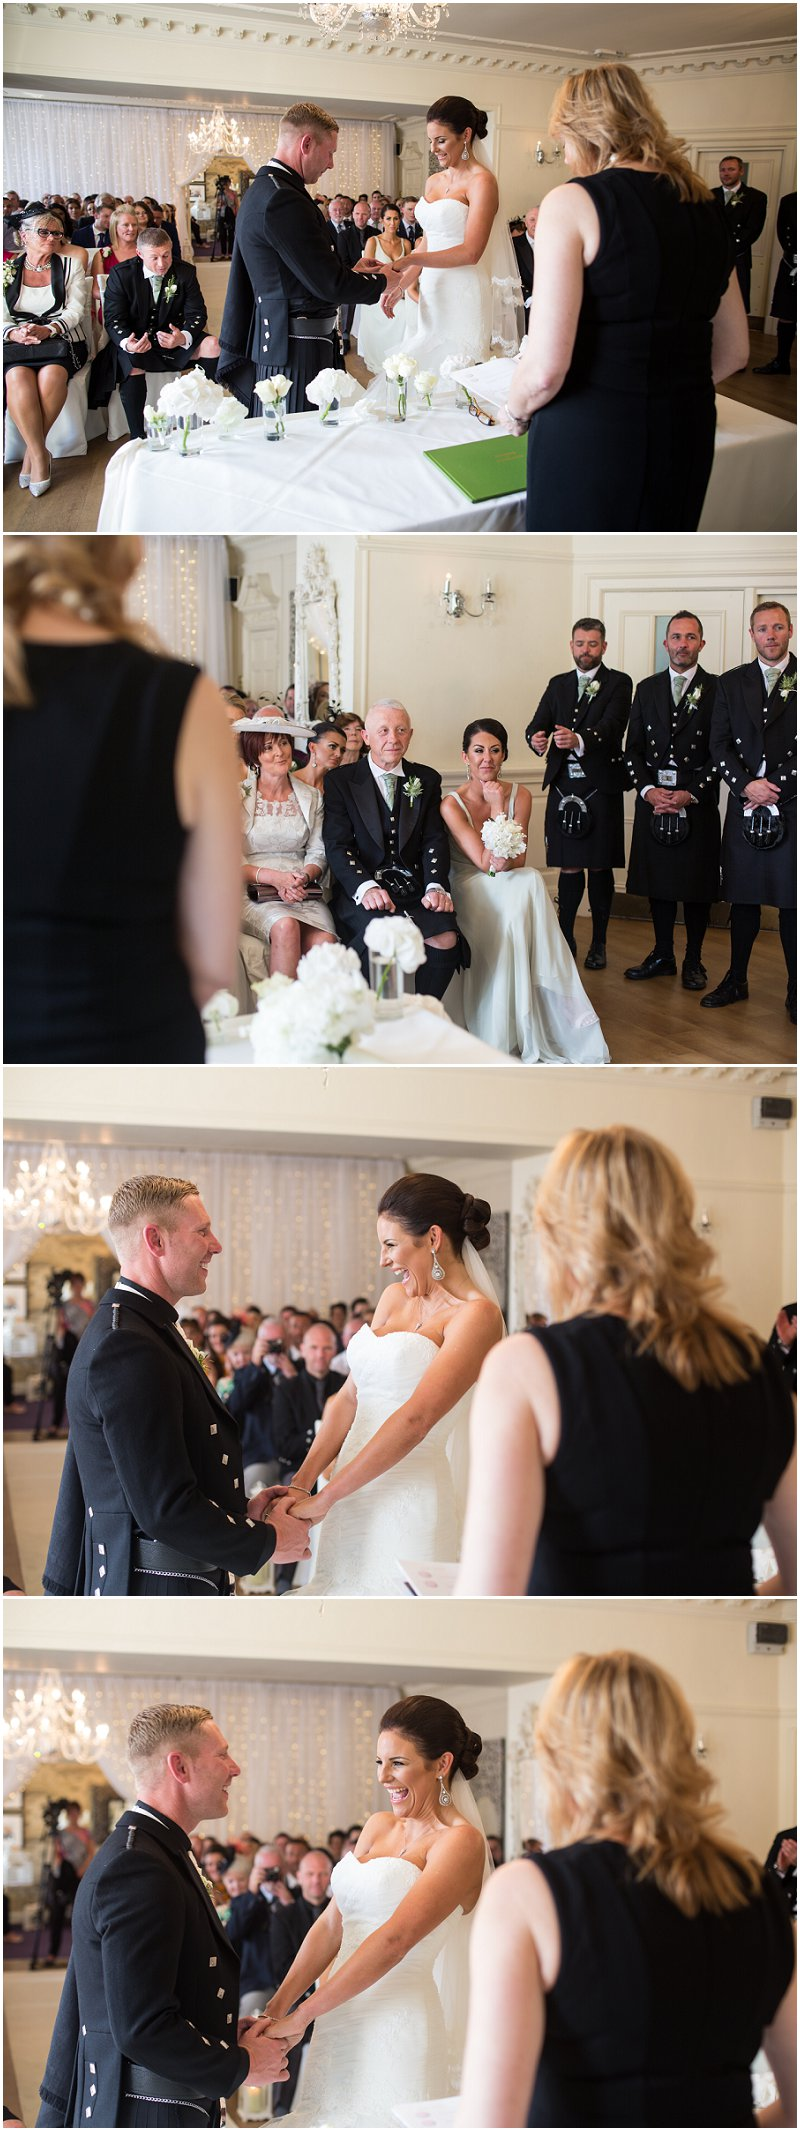 Wedding Ceremony at Eaves Hall